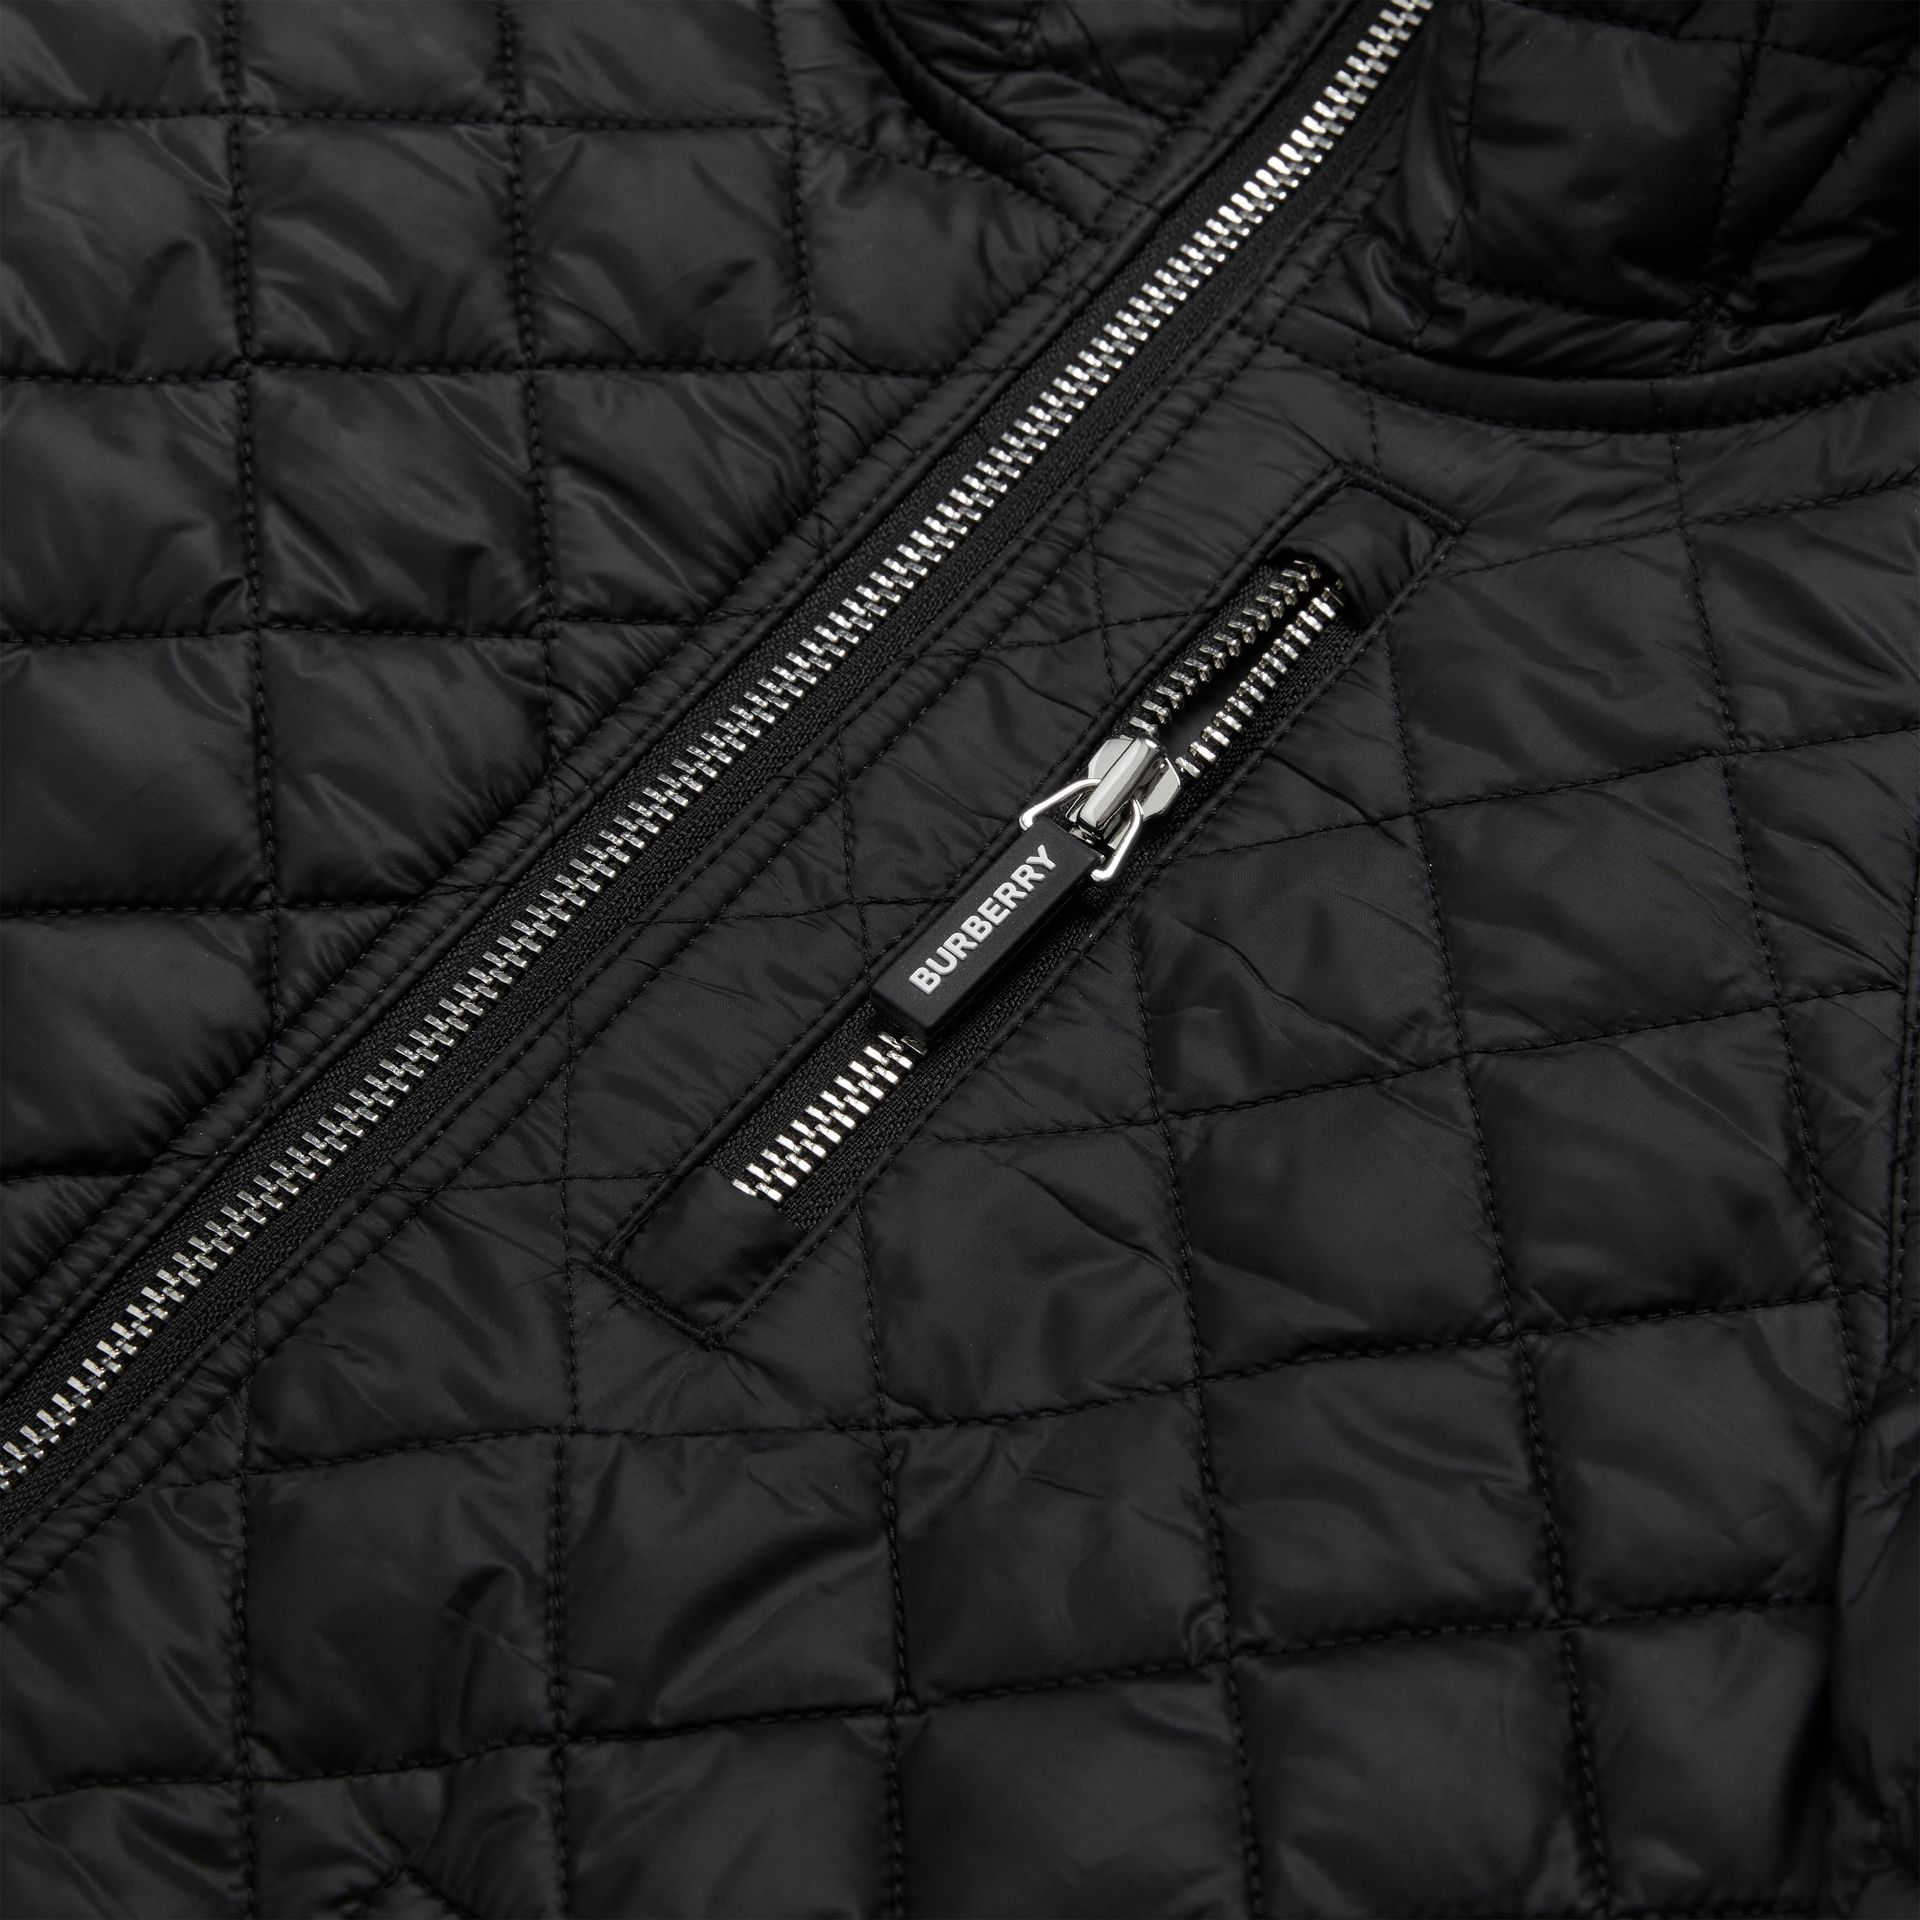 Diamond Quilted Hooded Coat in Black | Burberry - gallery image 1